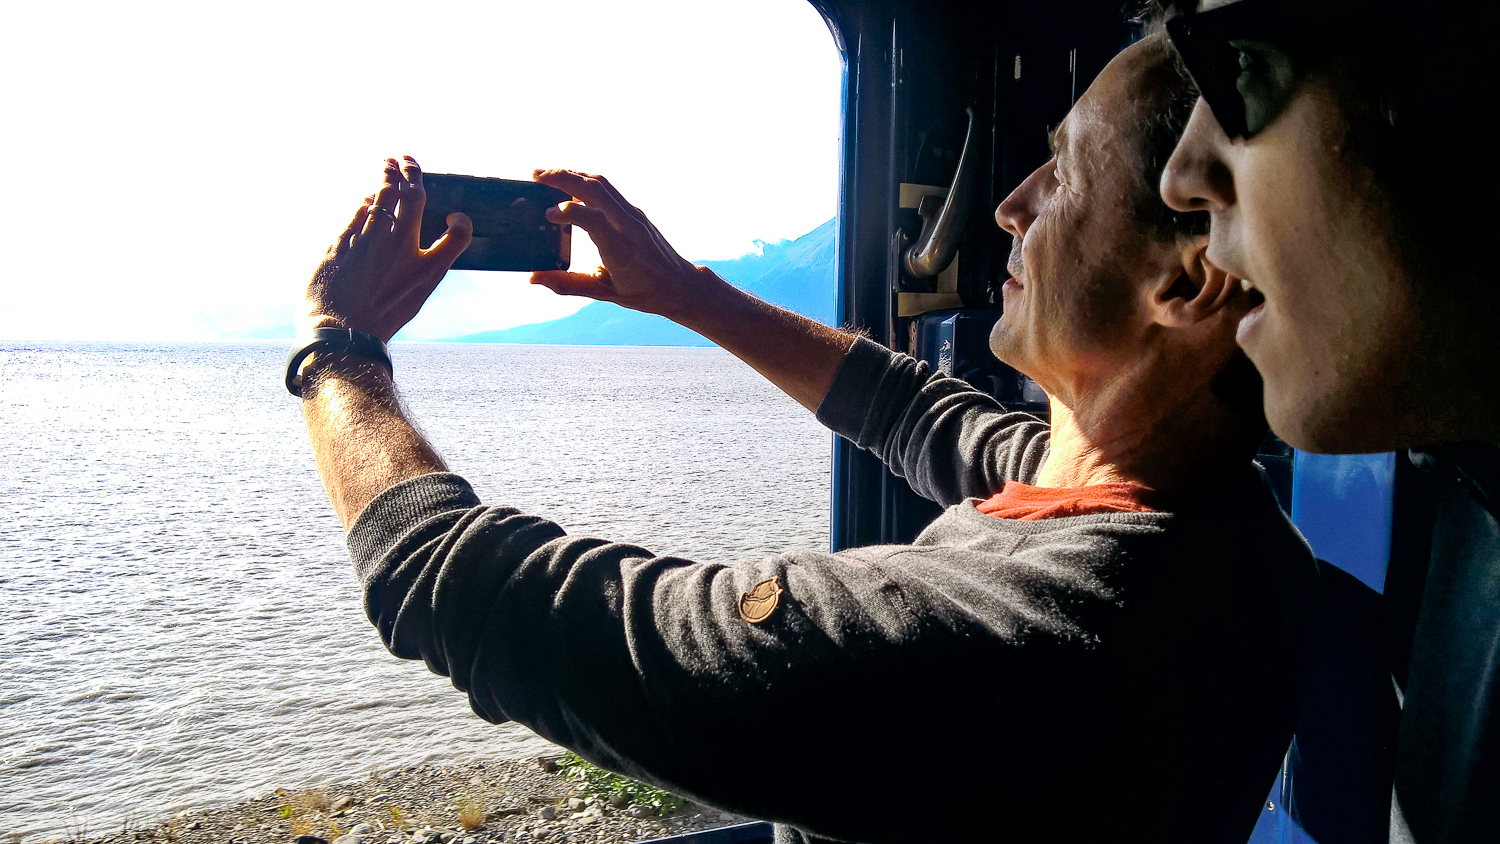 Nat Geo Photographer Stephen Alvares was also on the trip to shoot with us. Awesome dude and photographer.(Shot with the Nokia Lumia 640 XL)